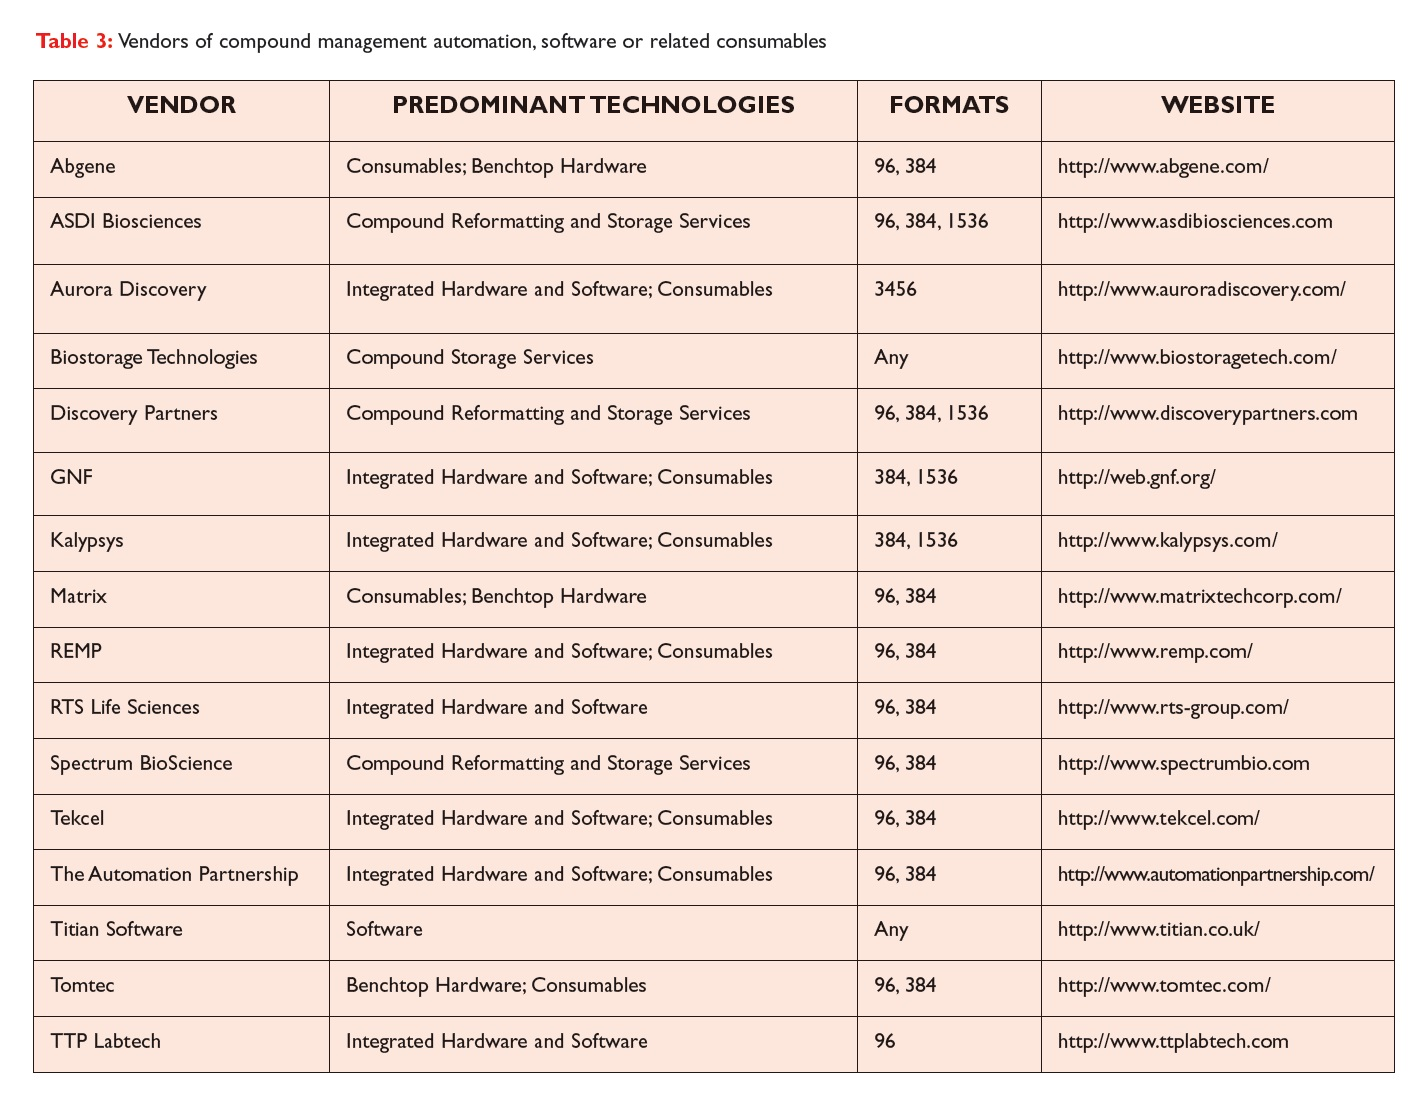 Table 3 Vendors of compound management automation, software or related consumables